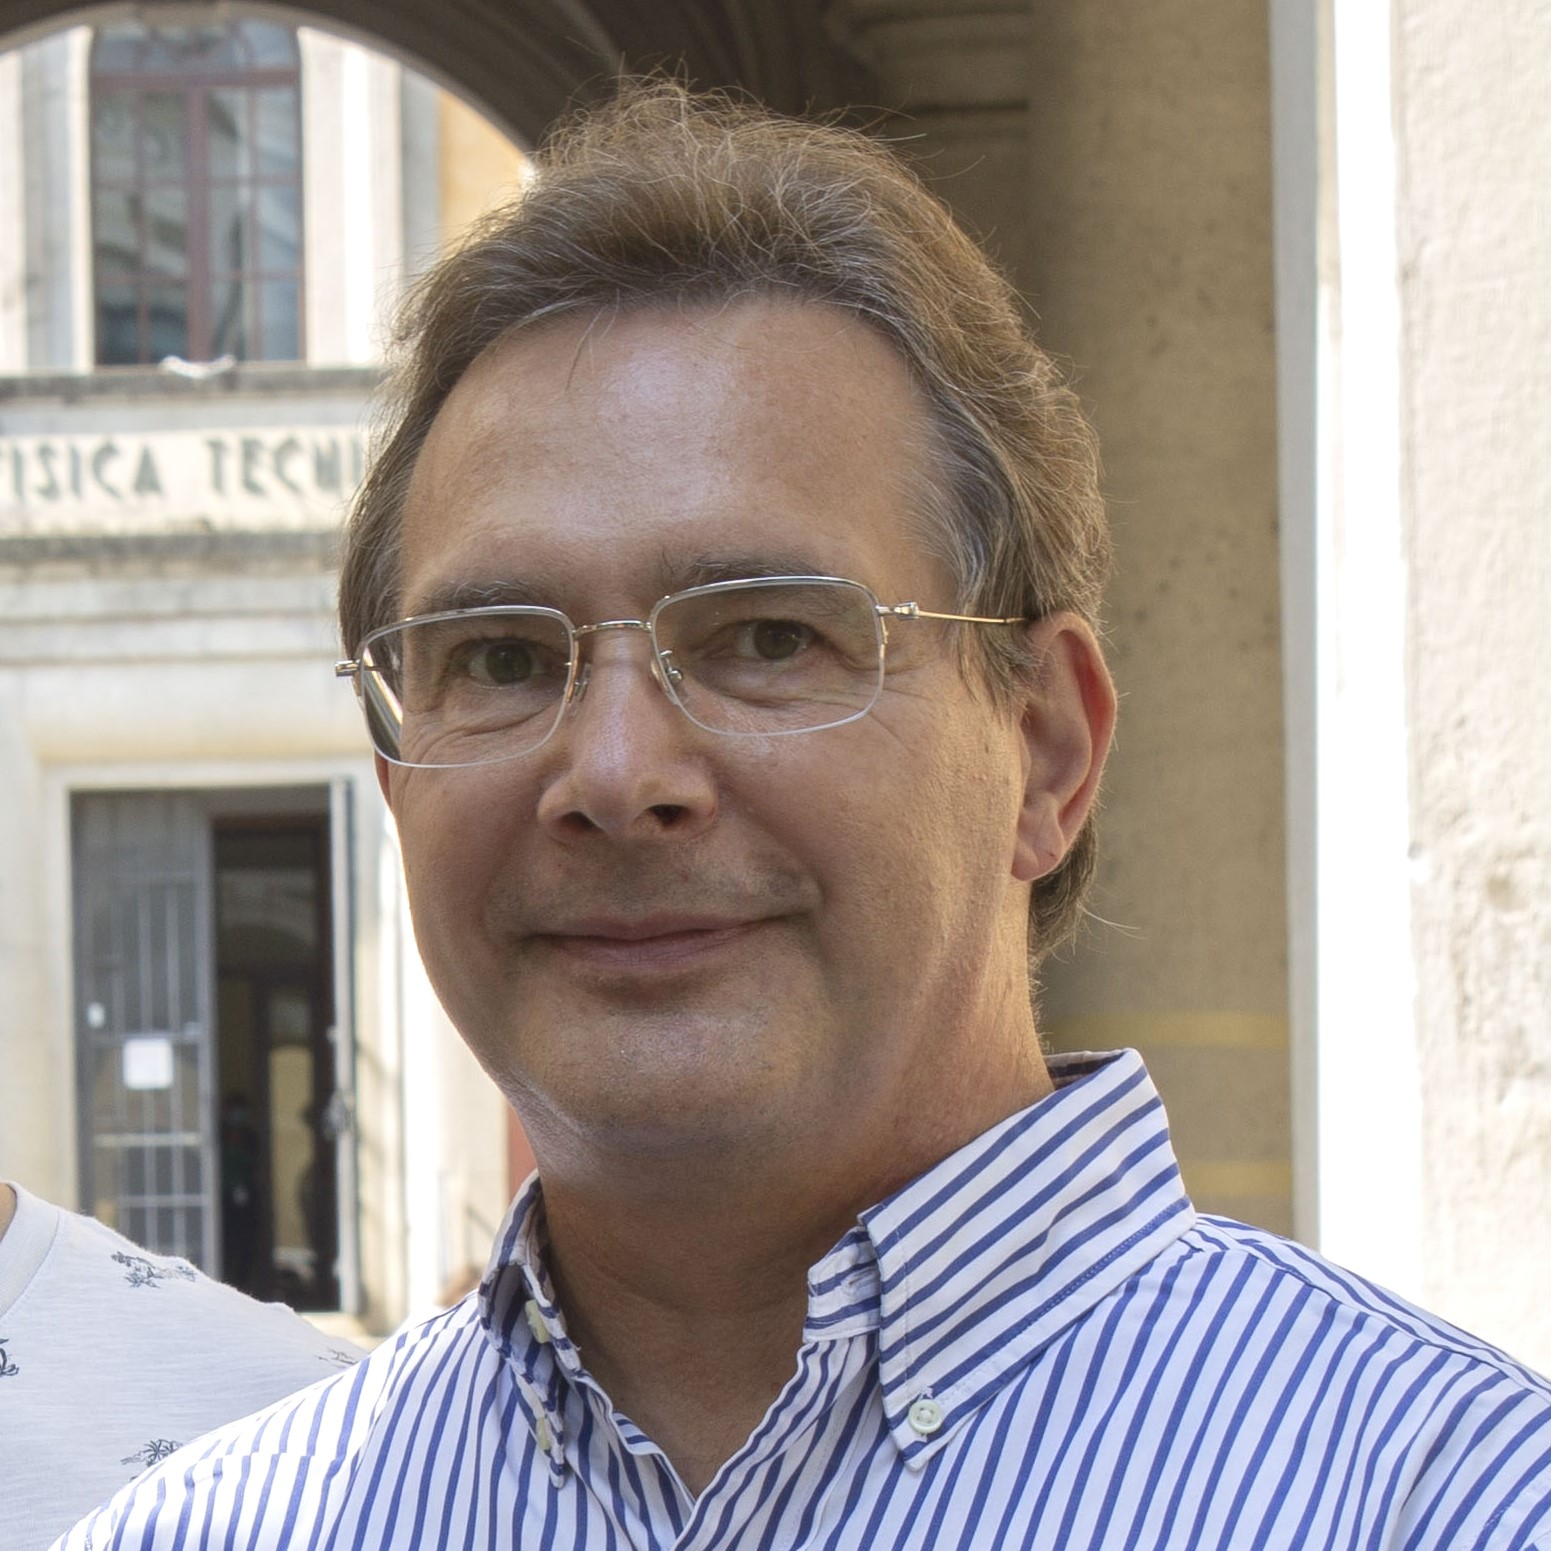 Photo of Dr.-Ing. Paolo Colombo, Dr. ing.